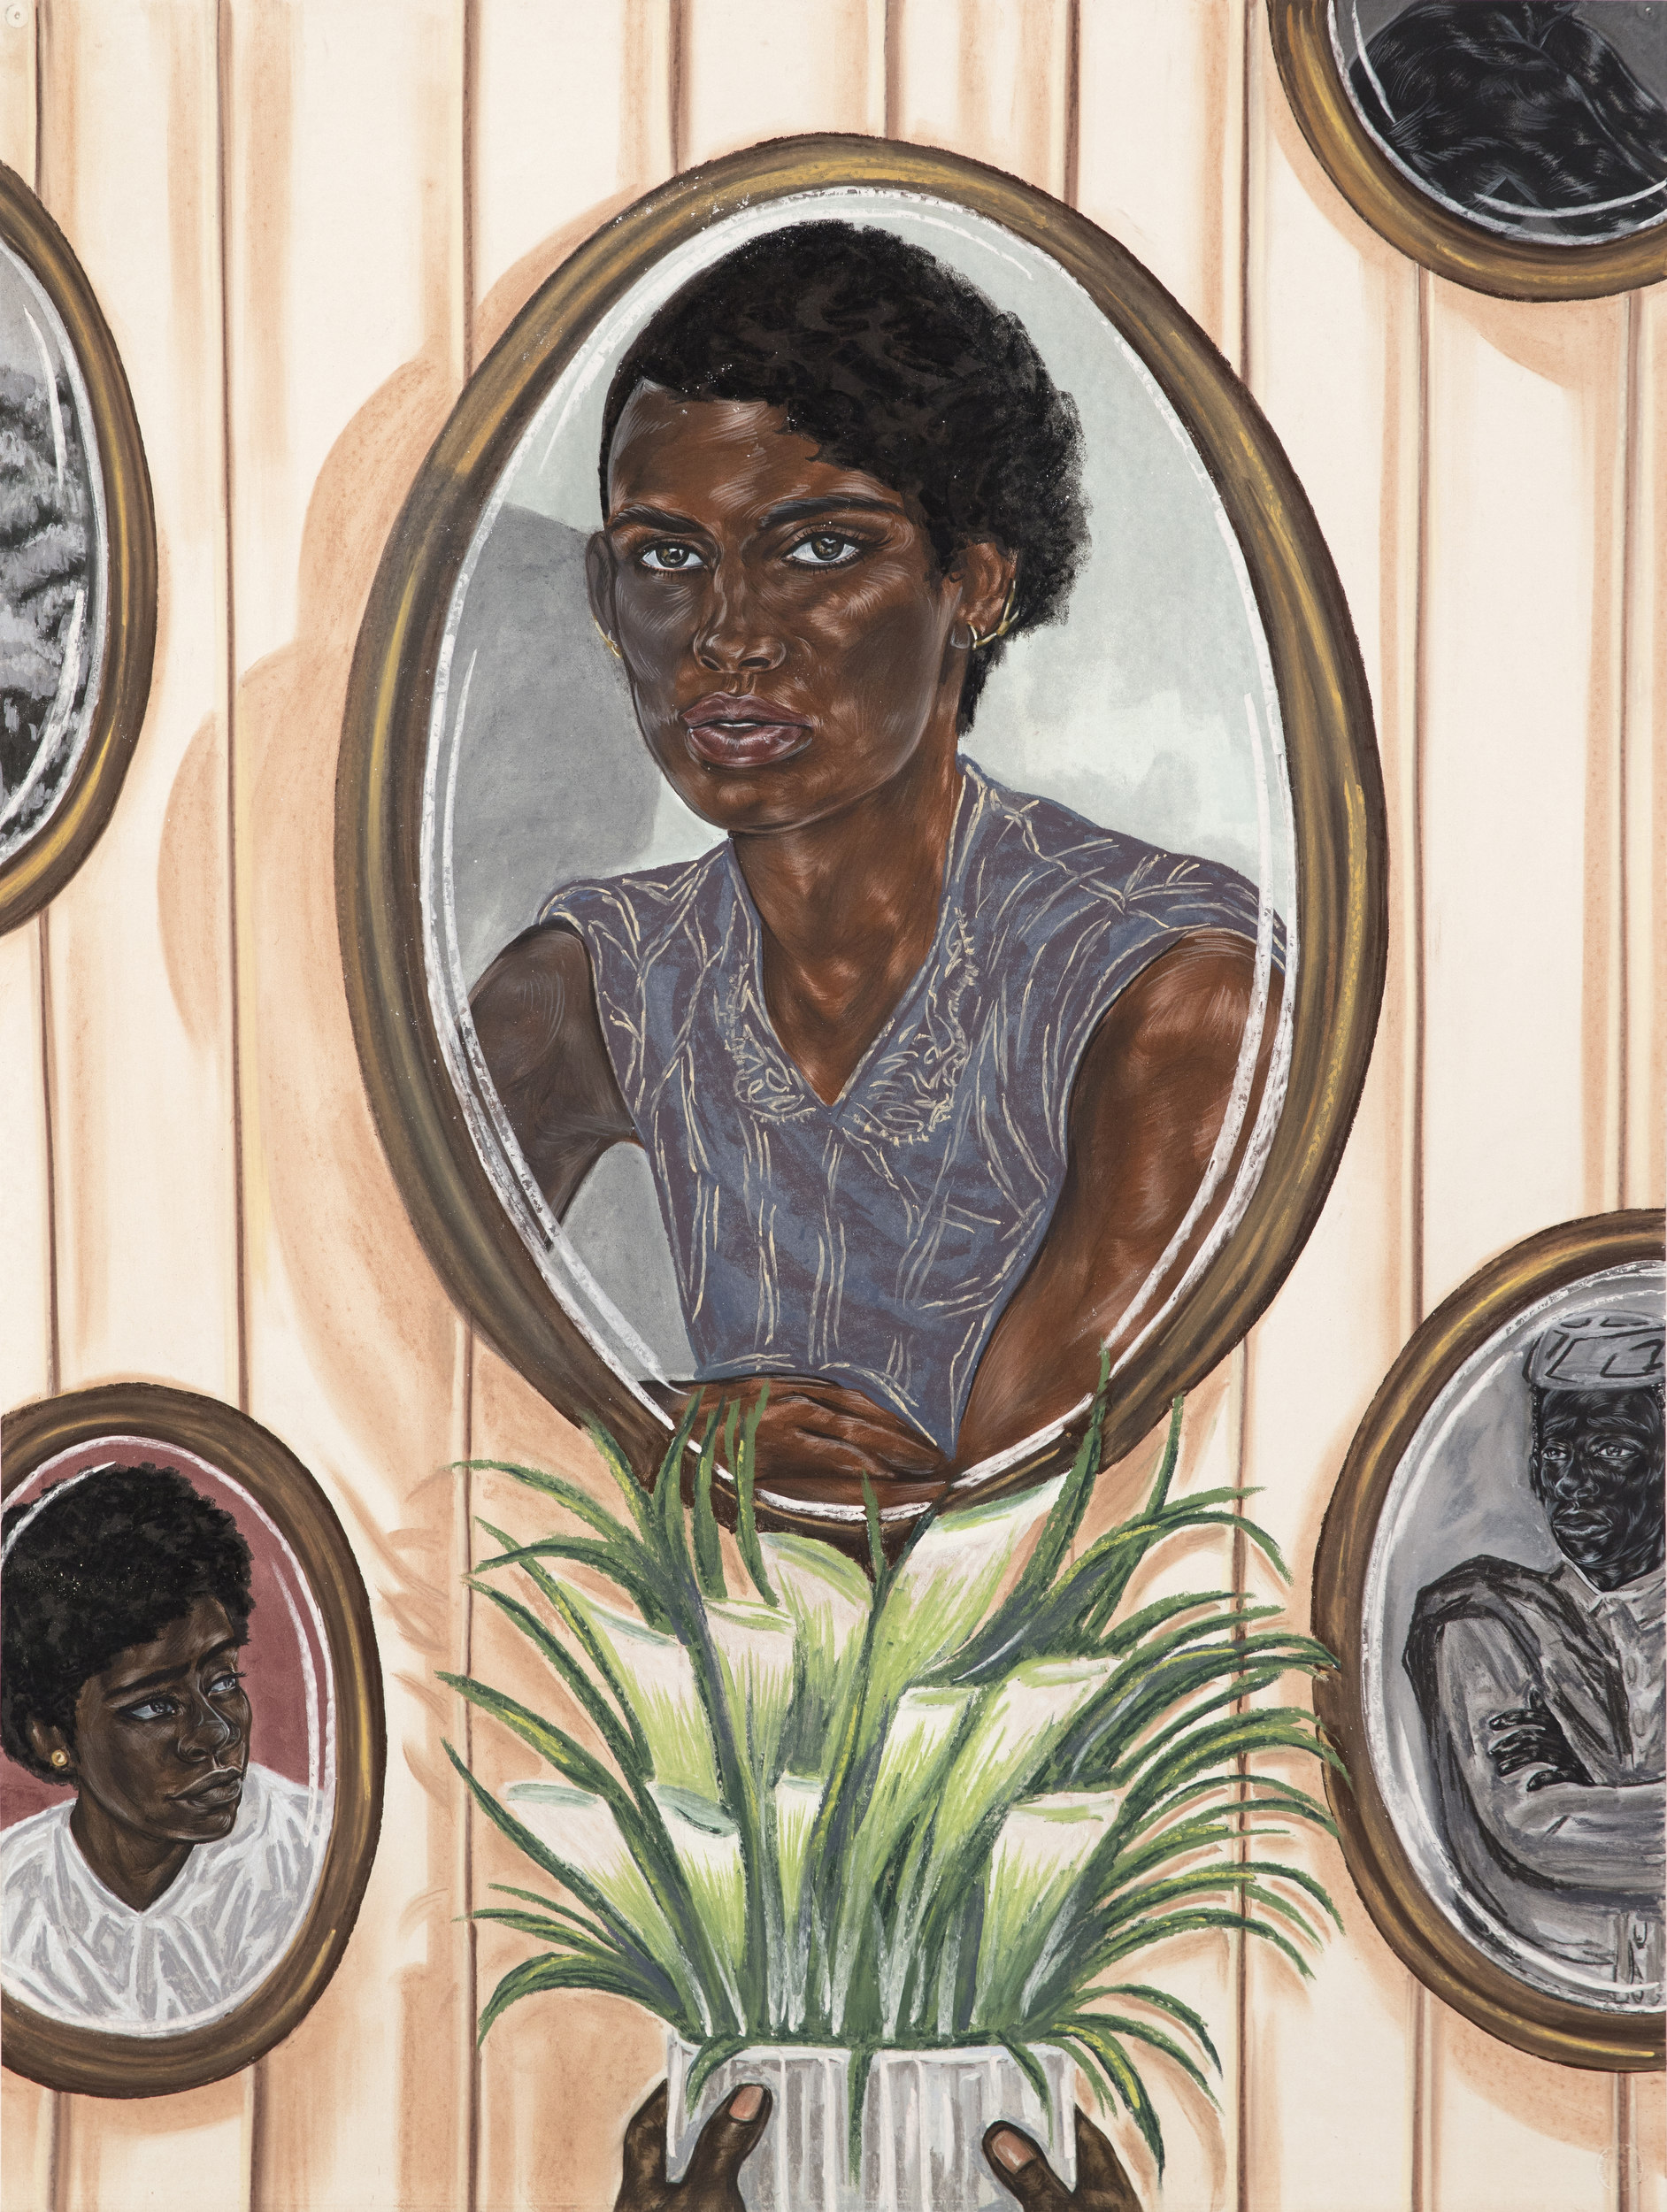 Toyin Ojih Odutola.  Wall of Ambassadors , 2017. Charcoal, pastel and pencil on paper, 40 x 30 inches. ©Toyin Ojih Odutola.  Courtesy of the artist and Jack Shainman Gallery, New York.